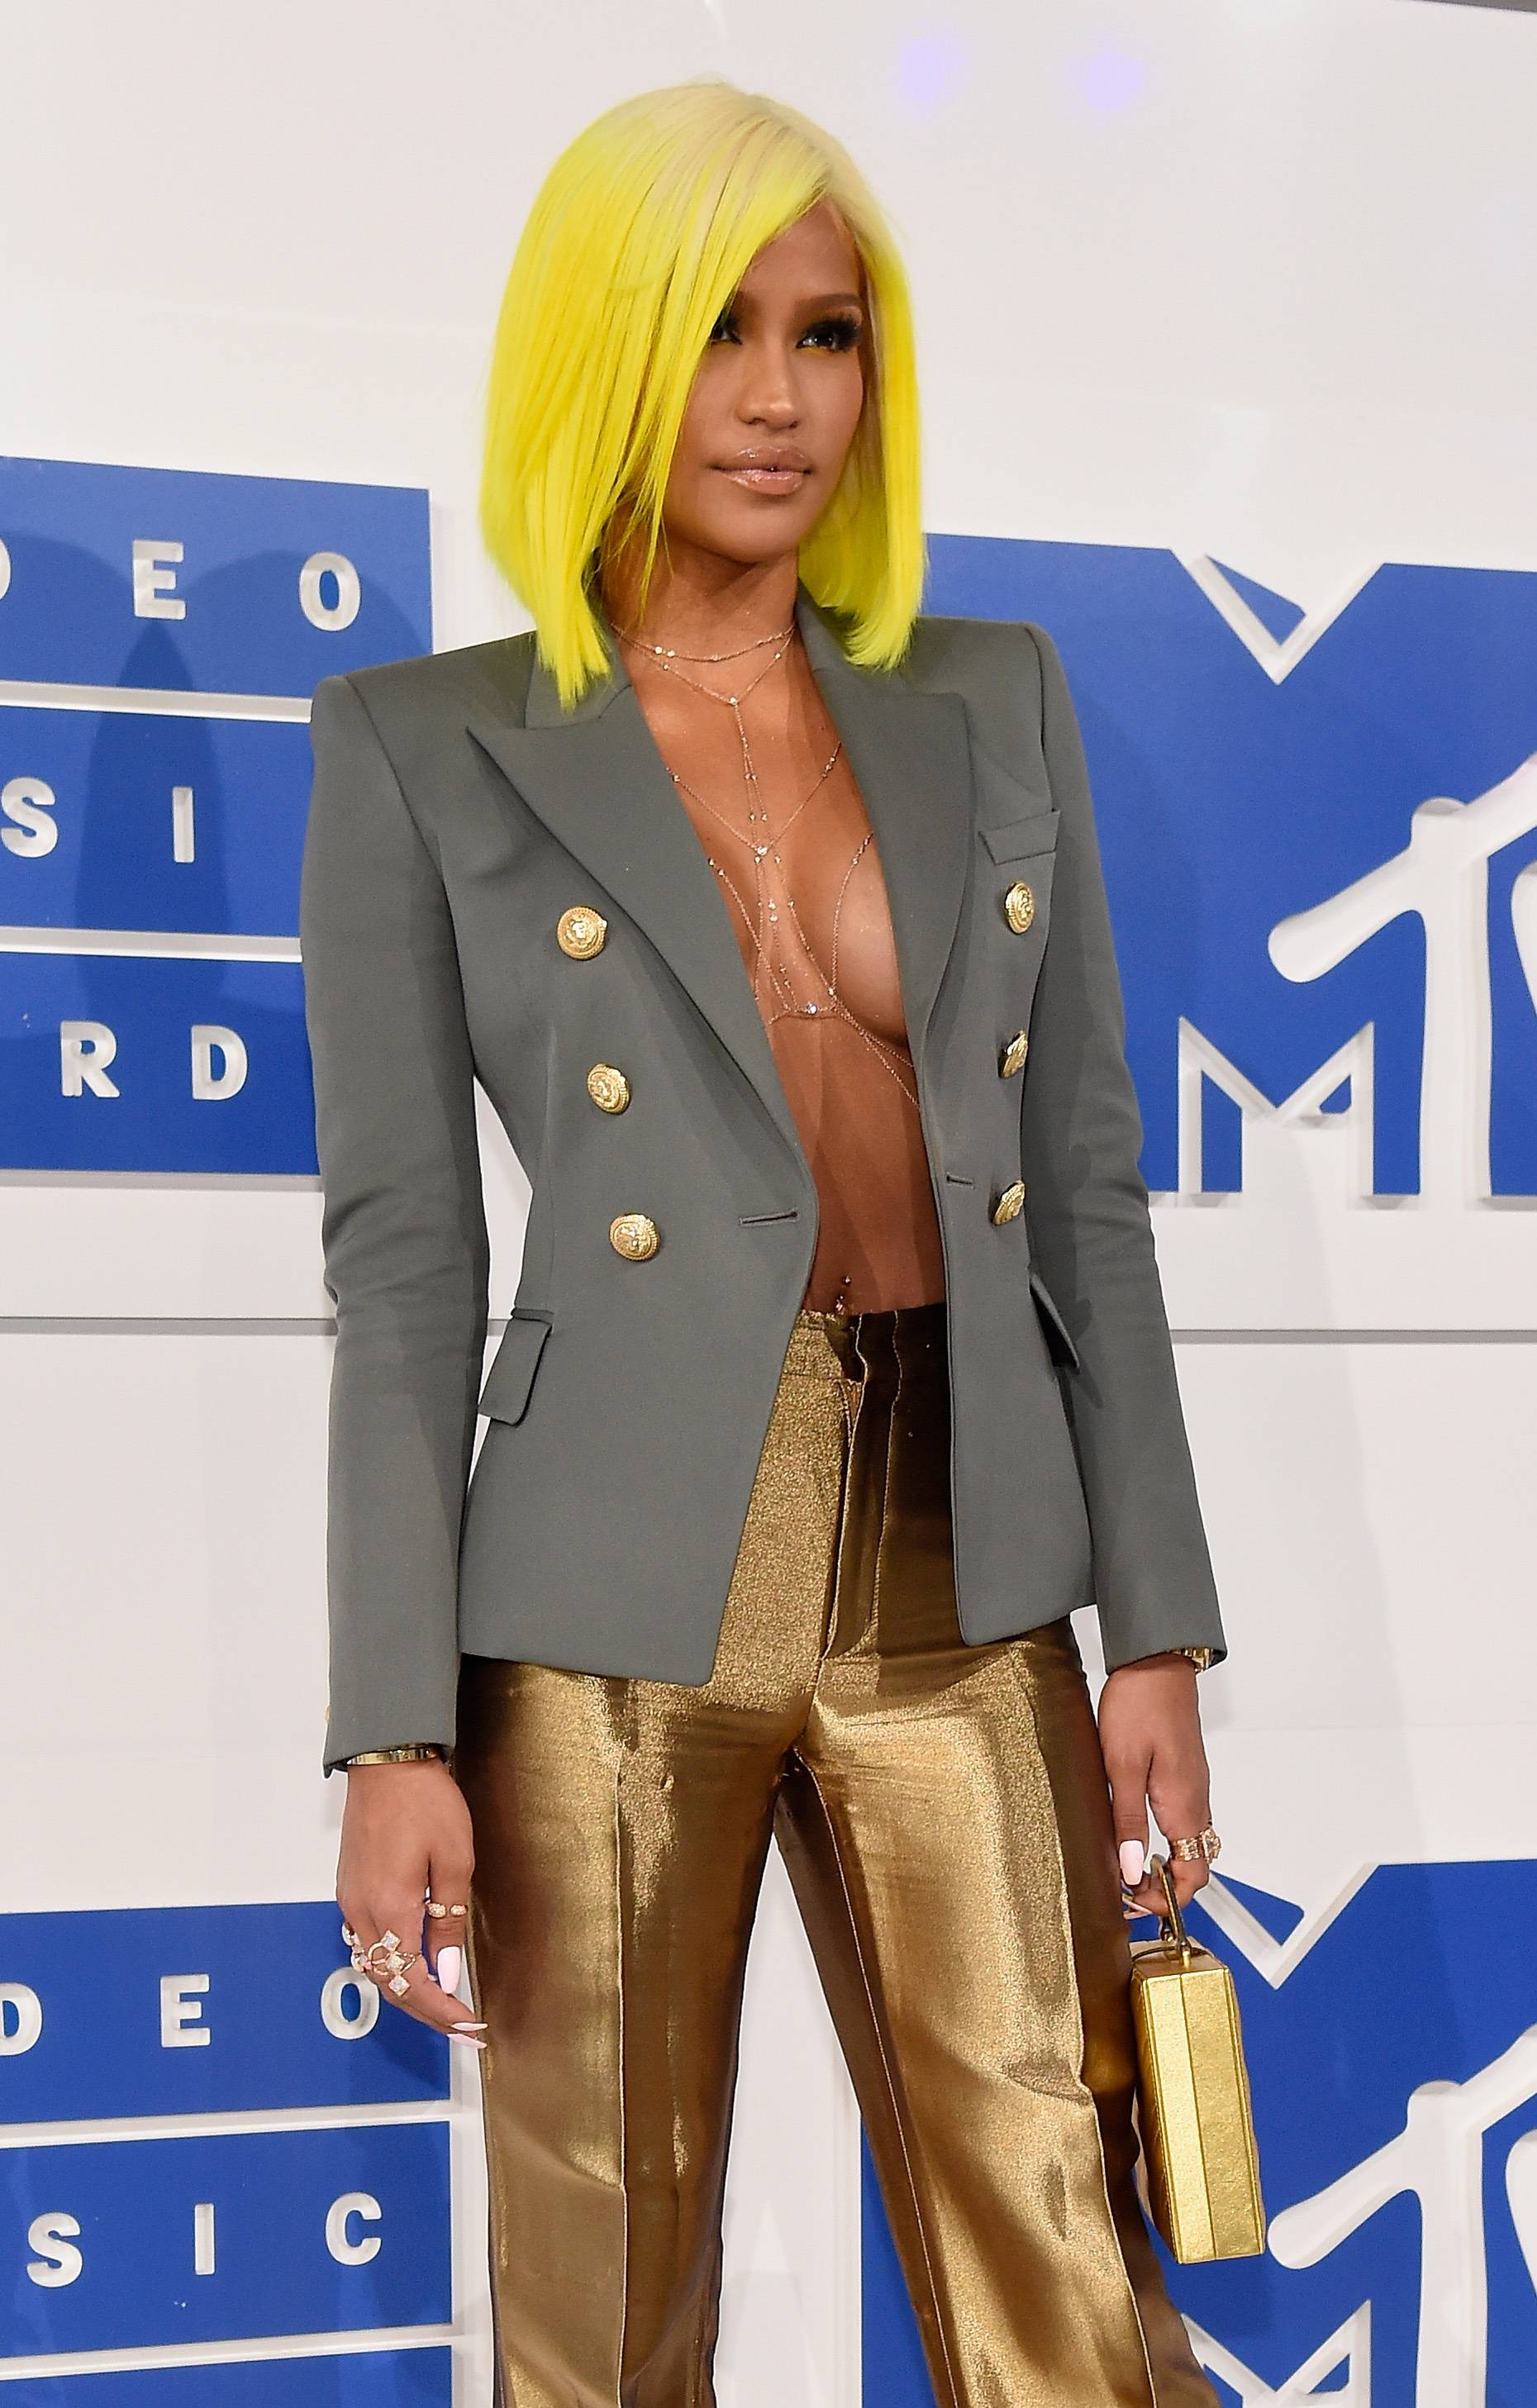 The only thing that could distract us from Cassie's neon green hair and shimmering gold pants is her missing top (which no one actually misses) at the 2016 VMAs.